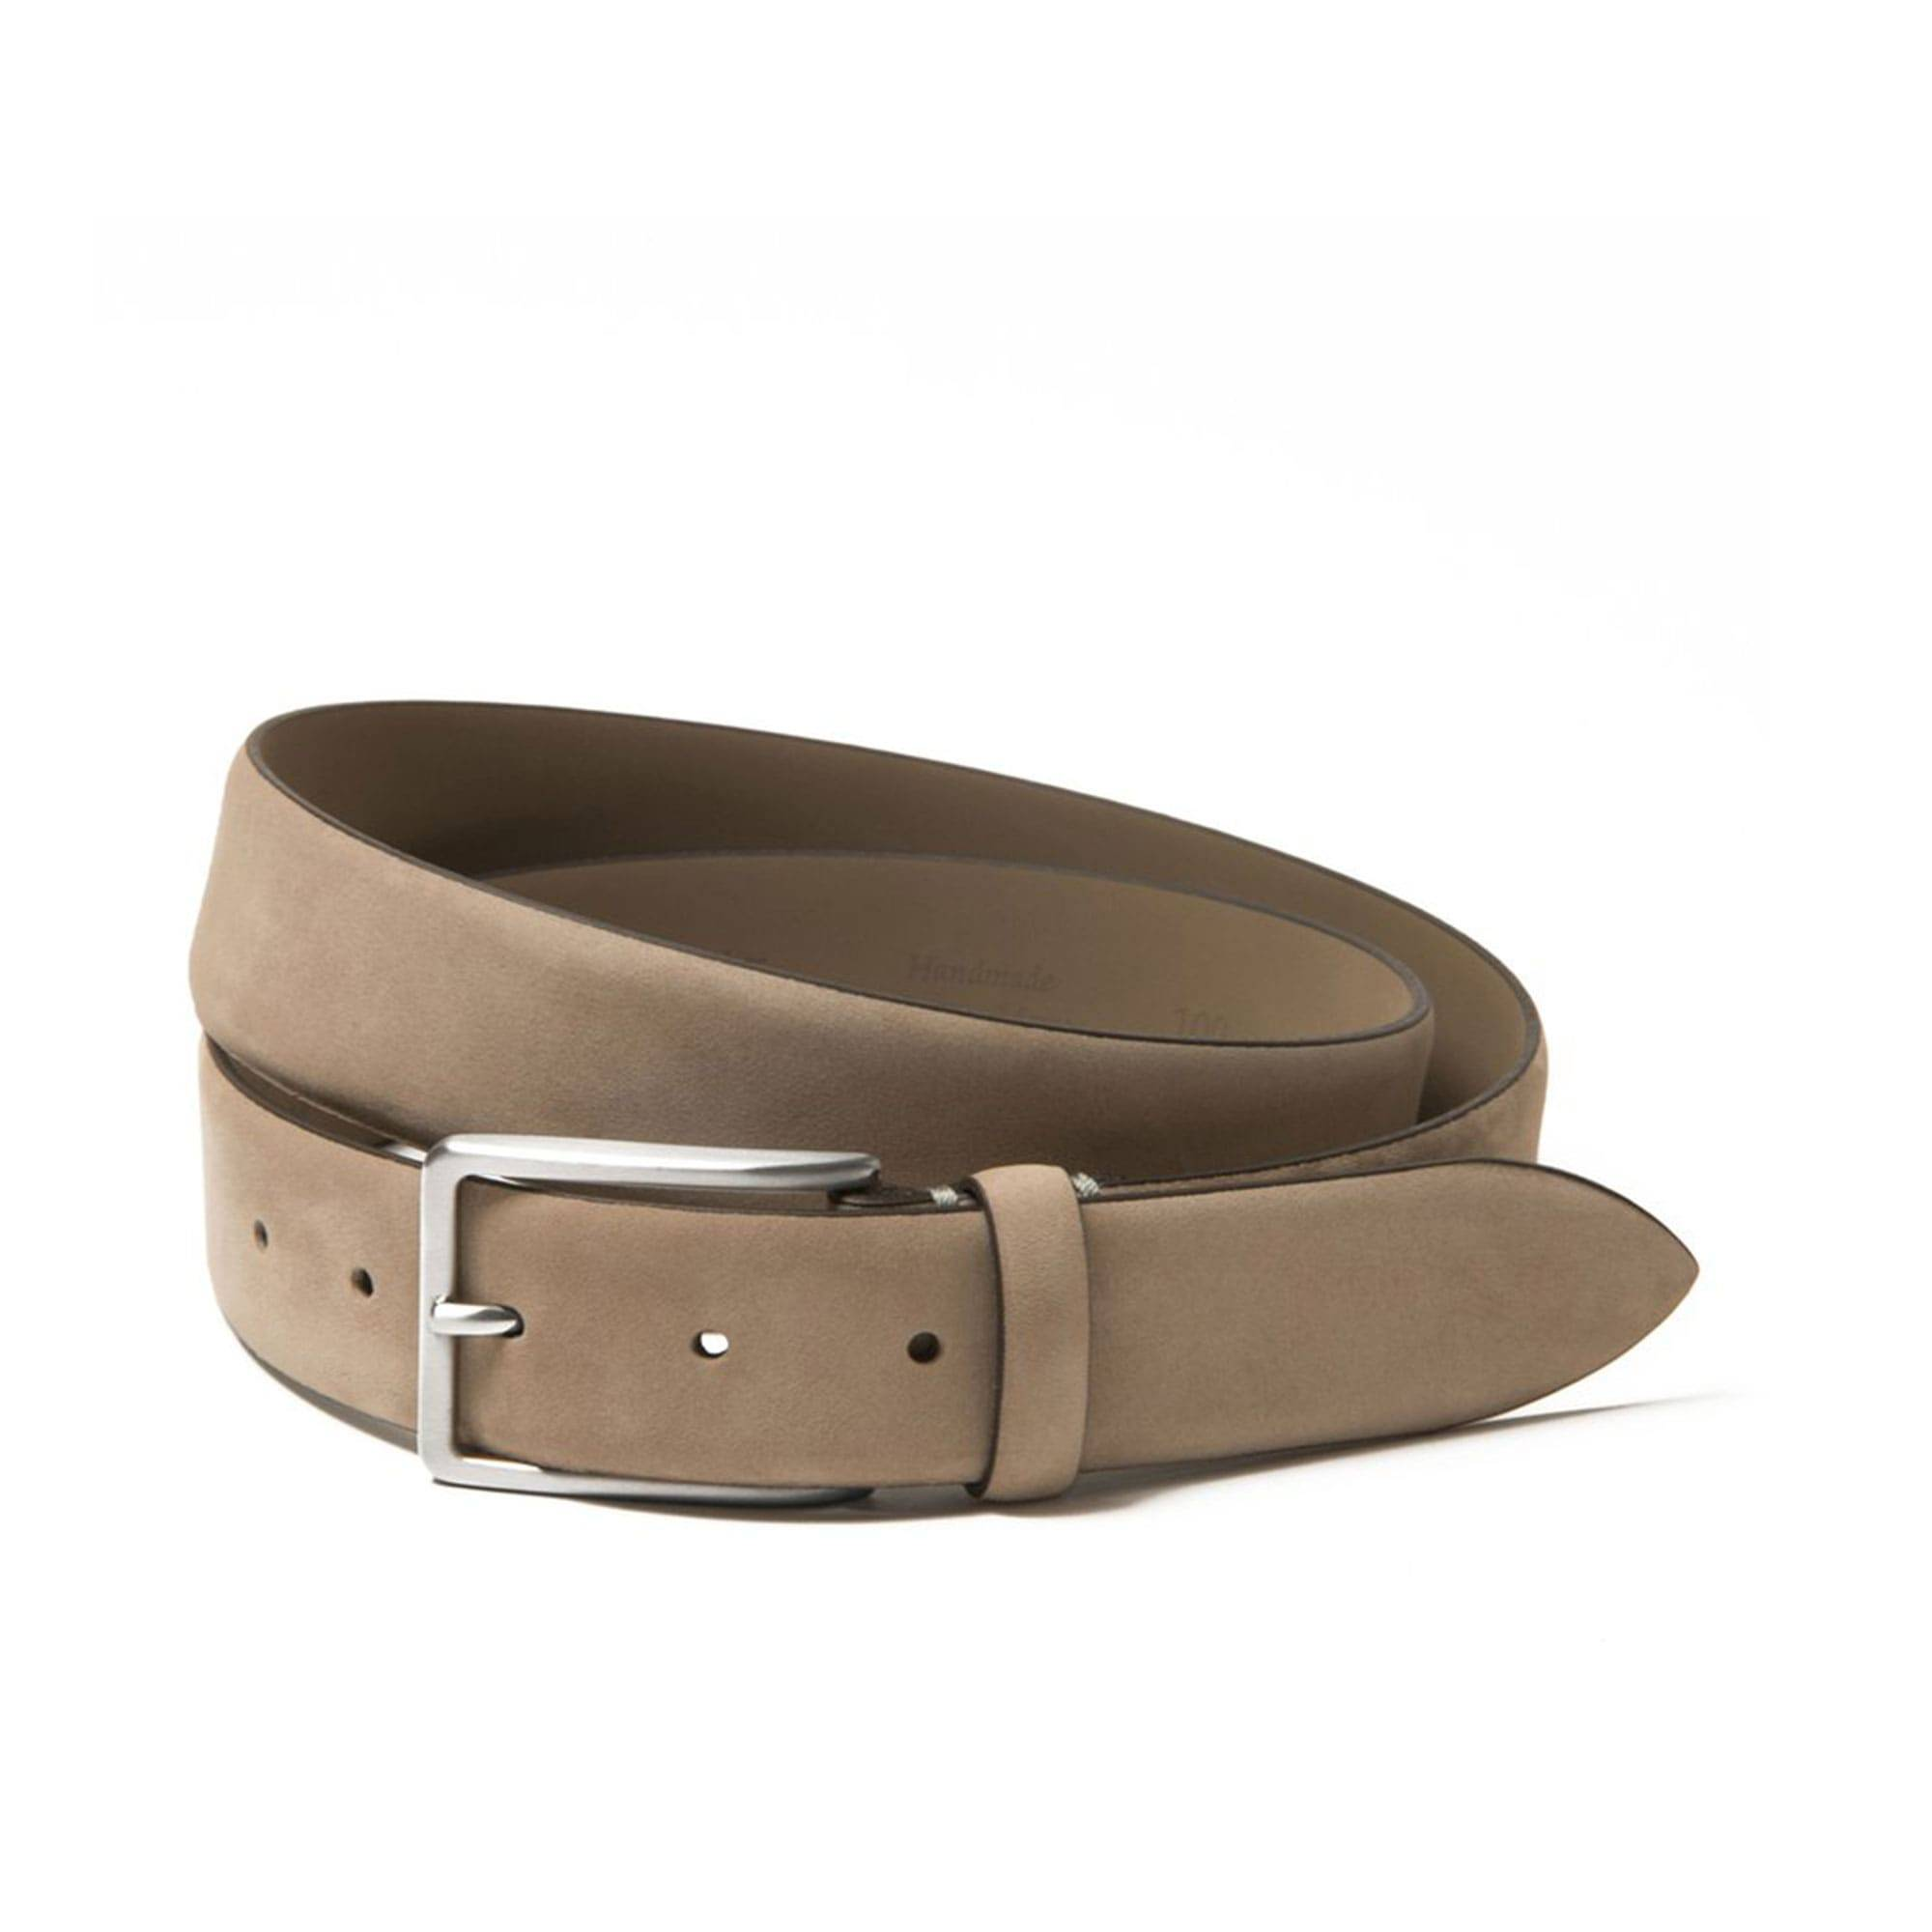 Luca Faloni Beige Nubuck Leather Belt Made in Italy